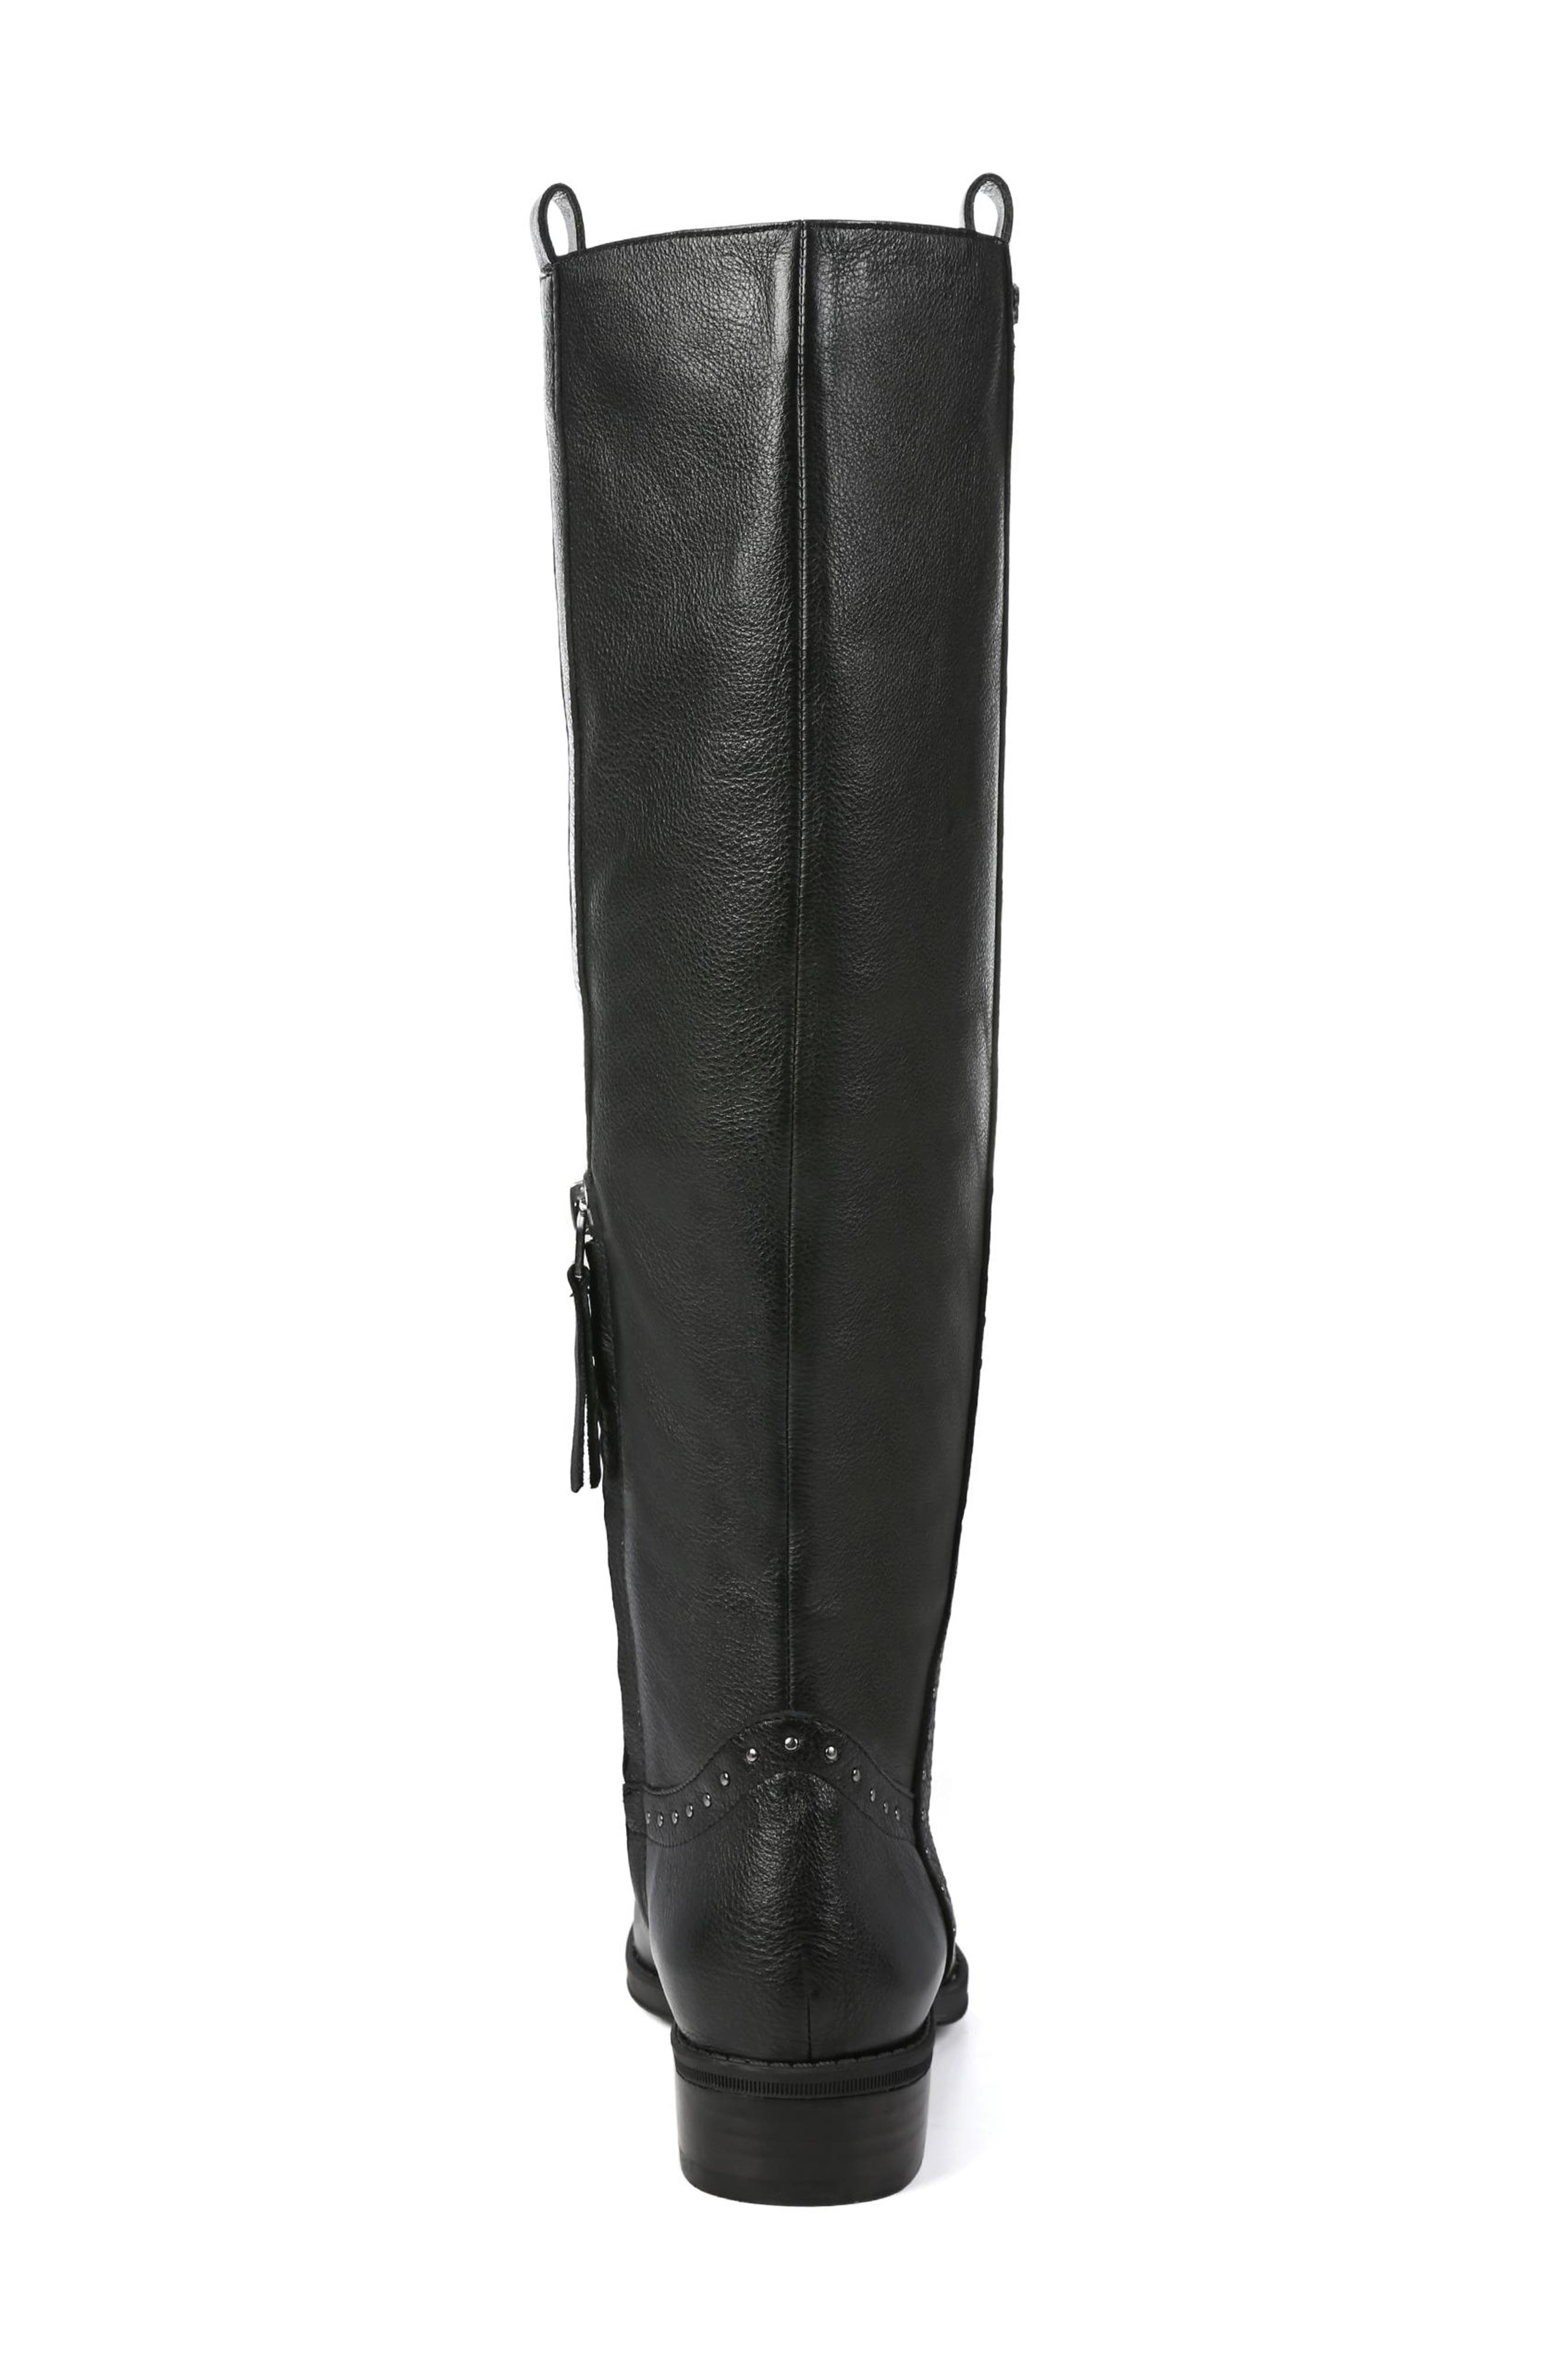 Prina Riding Boot,                             Alternate thumbnail 8, color,                             BLACK LEATHER